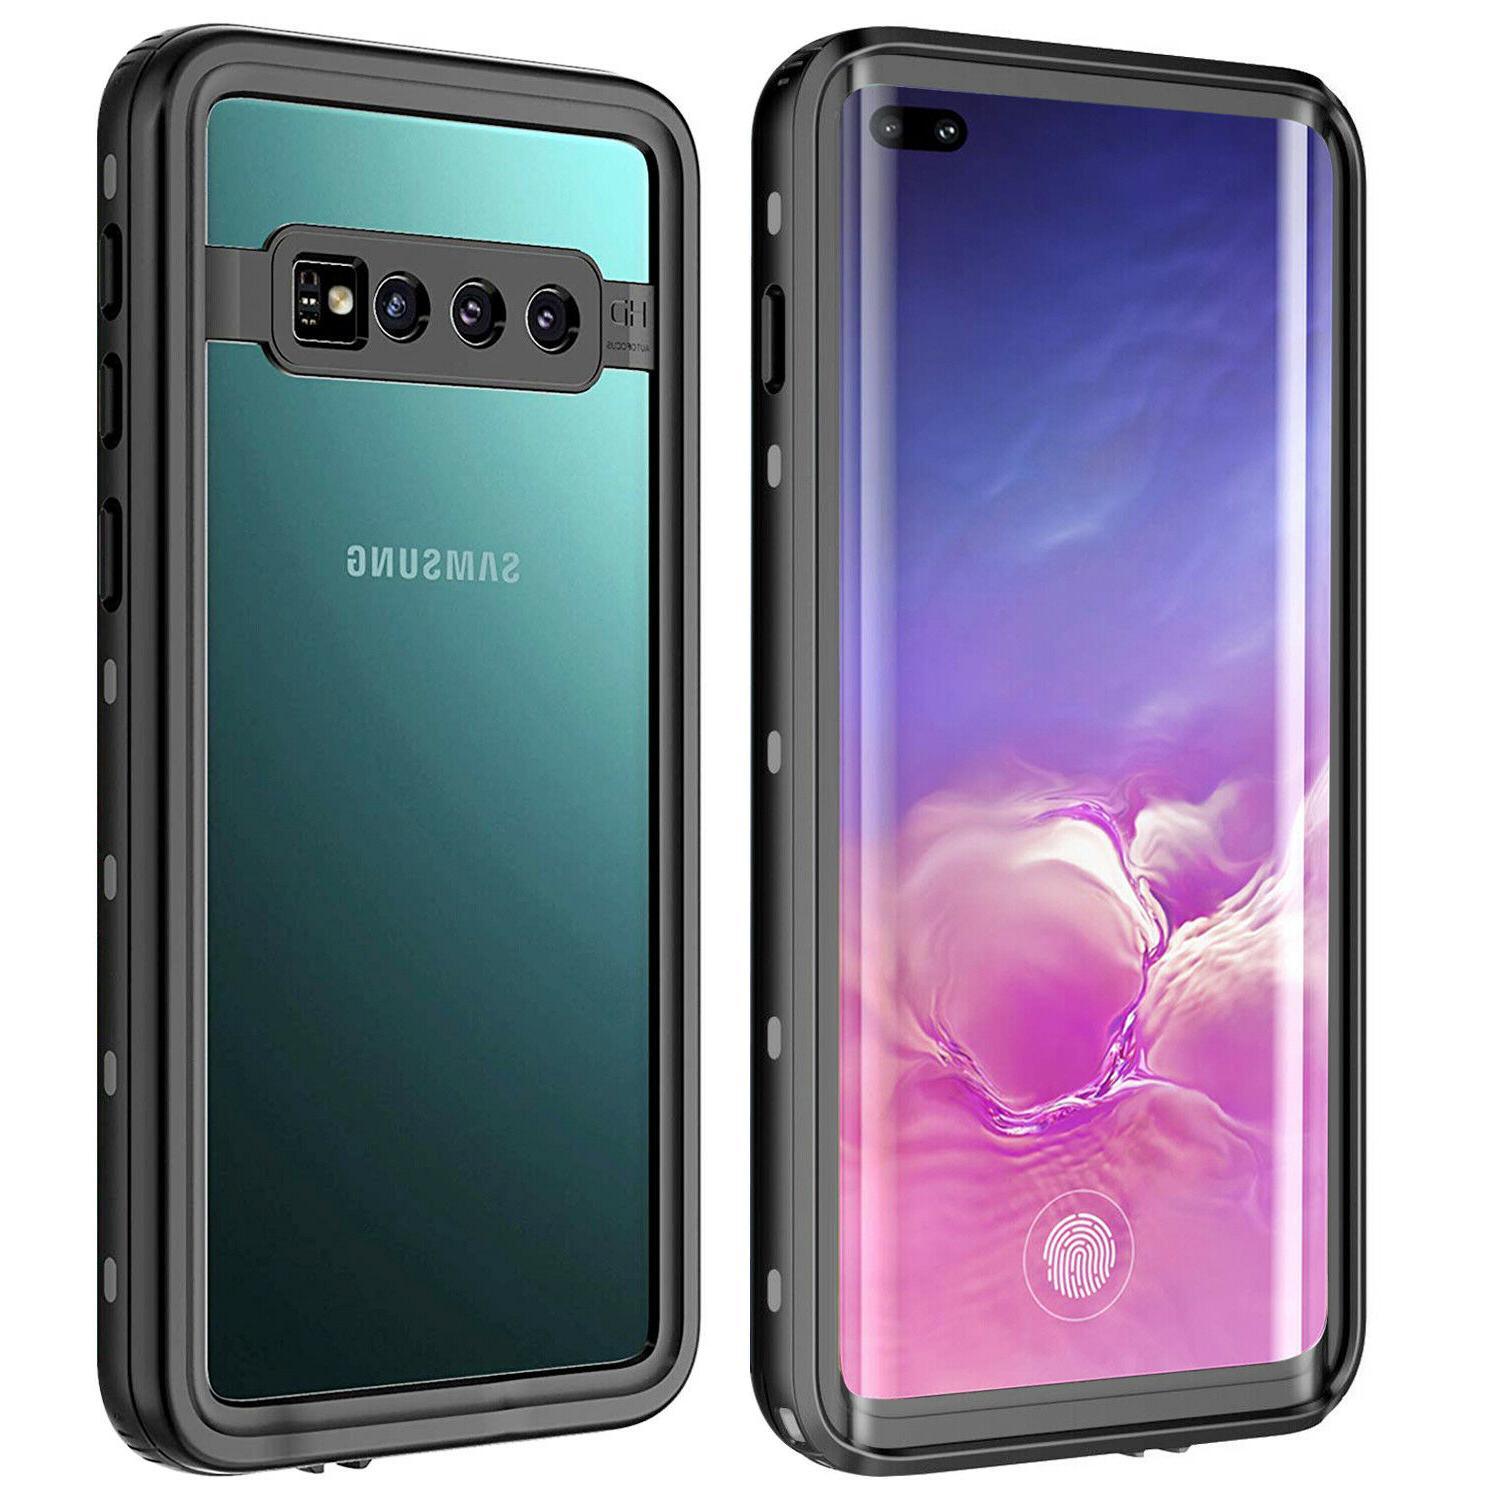 Heavy Rugged Waterproof Cover Galaxy Lift Case